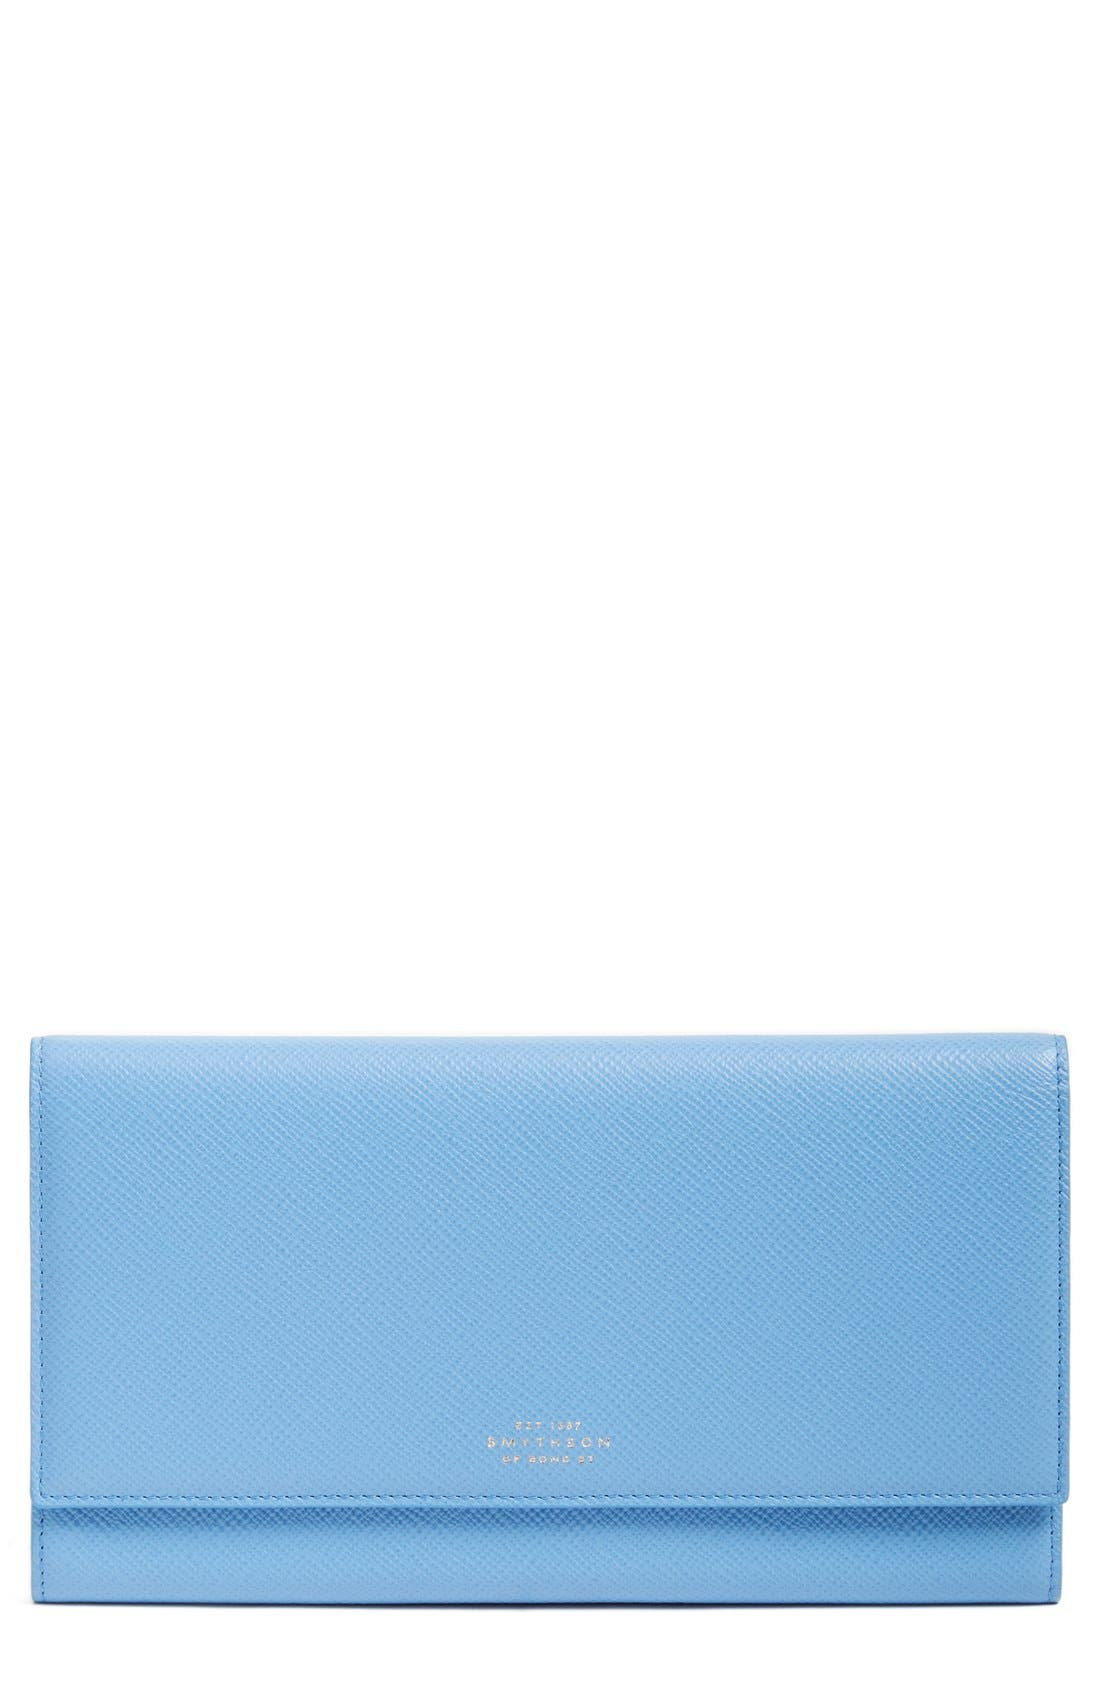 'Panama Marshall' Travel Wallet,                             Main thumbnail 1, color,                             Nile Blue